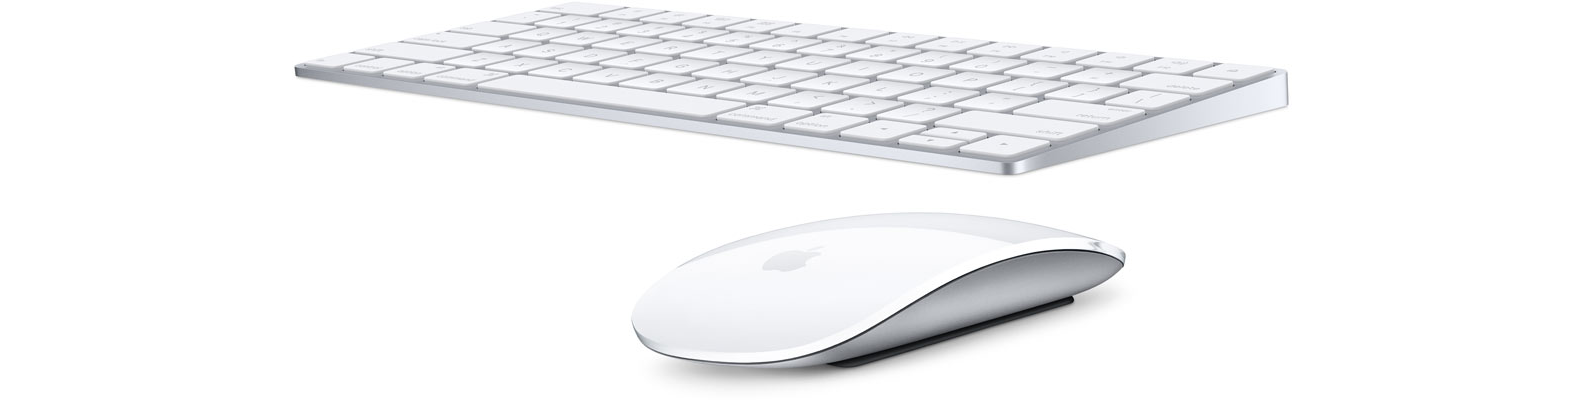 Image of a keyboard and a mouse